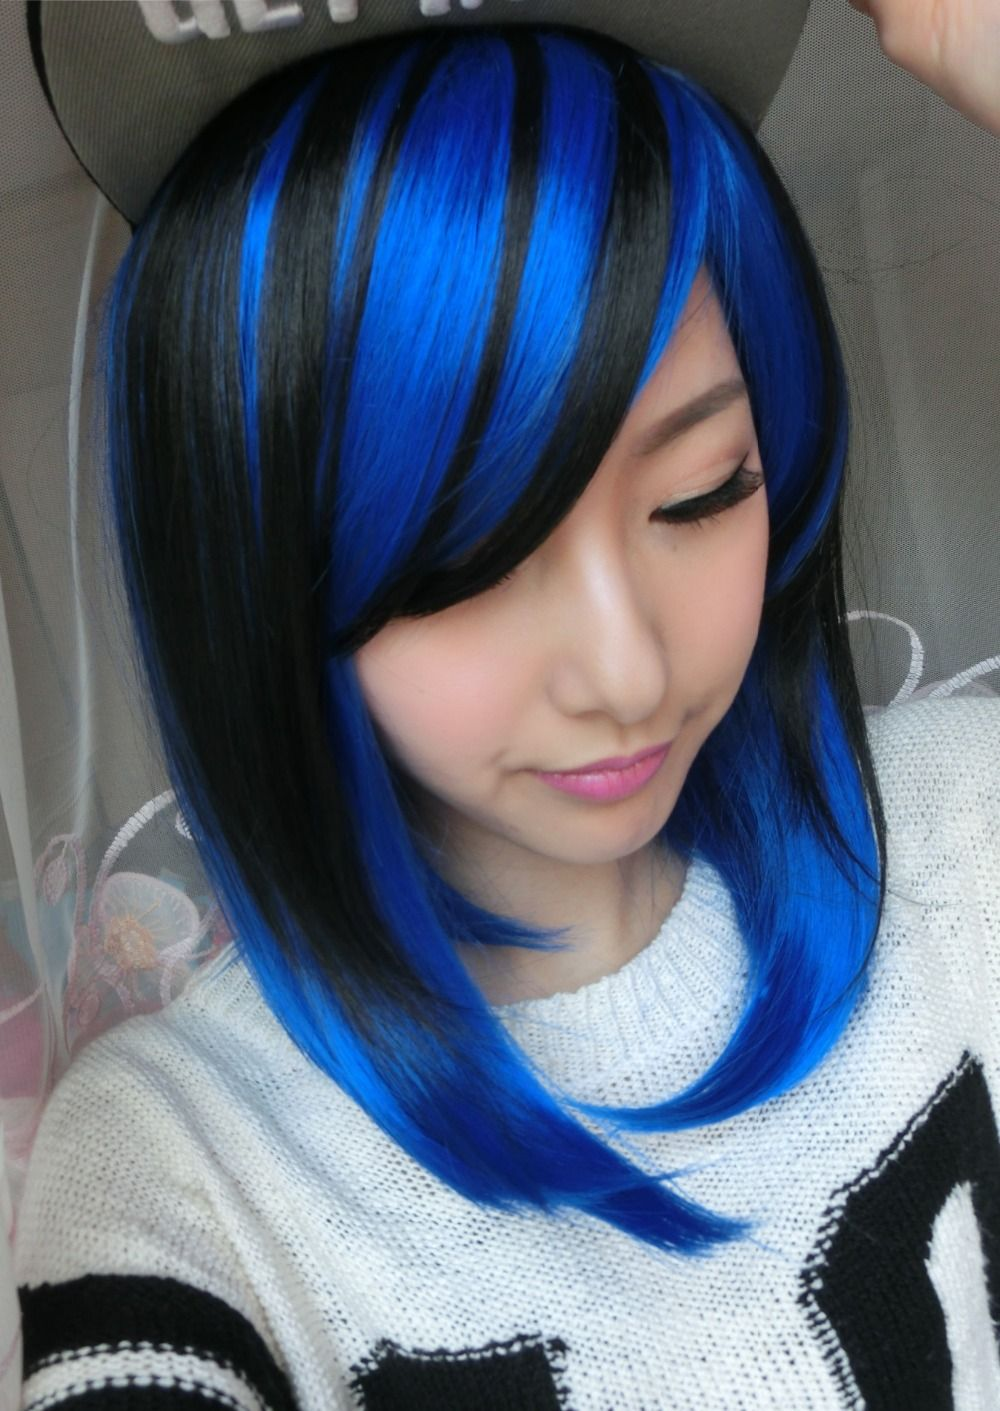 For Women Two Tone Synthetic Hair 36cm Short Font B Black B Font Mixed Font B Jpg 1000 1 Blue Hair Highlights Blonde Hair With Blue Highlights Royal Blue Hair